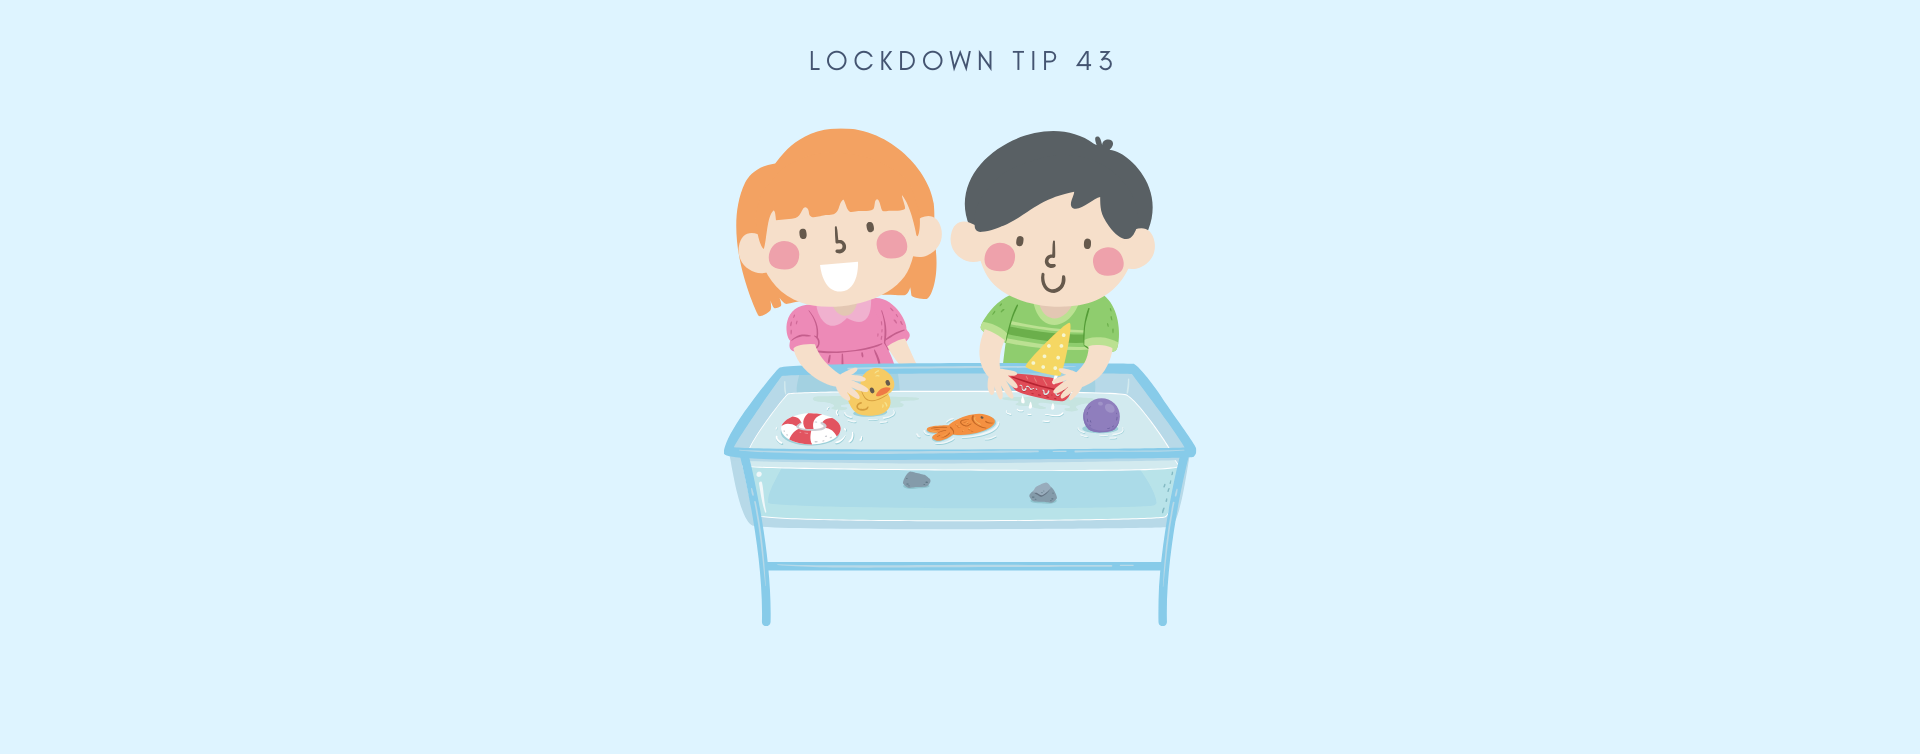 MCSA Lockdown Tip 43